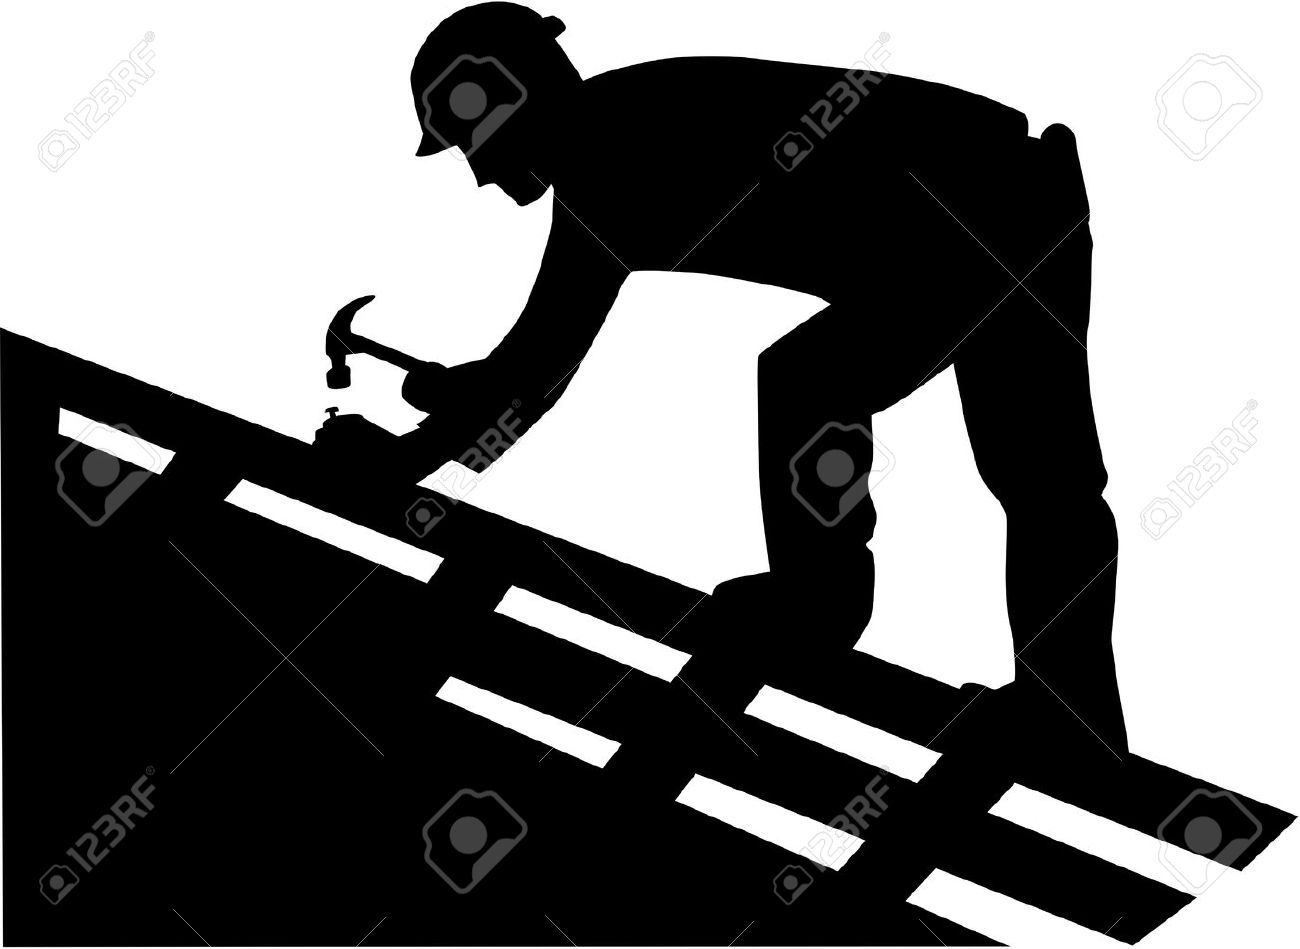 Roofer Silhouette - 41475989